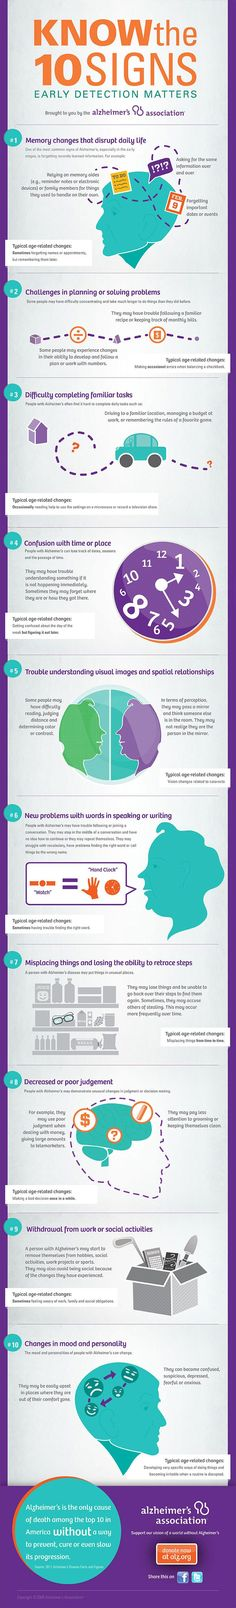 10 Signs Of Alzheimers Infographic